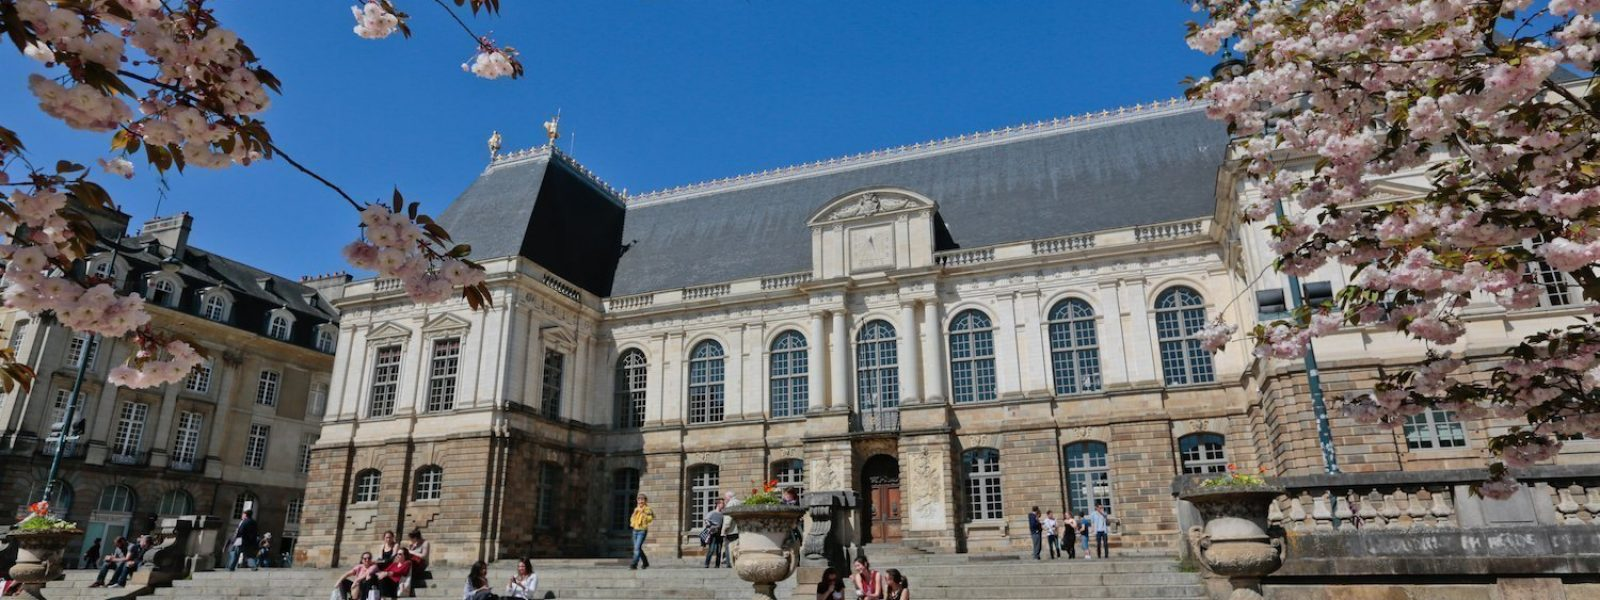 The Parliament of Brittany in Rennes